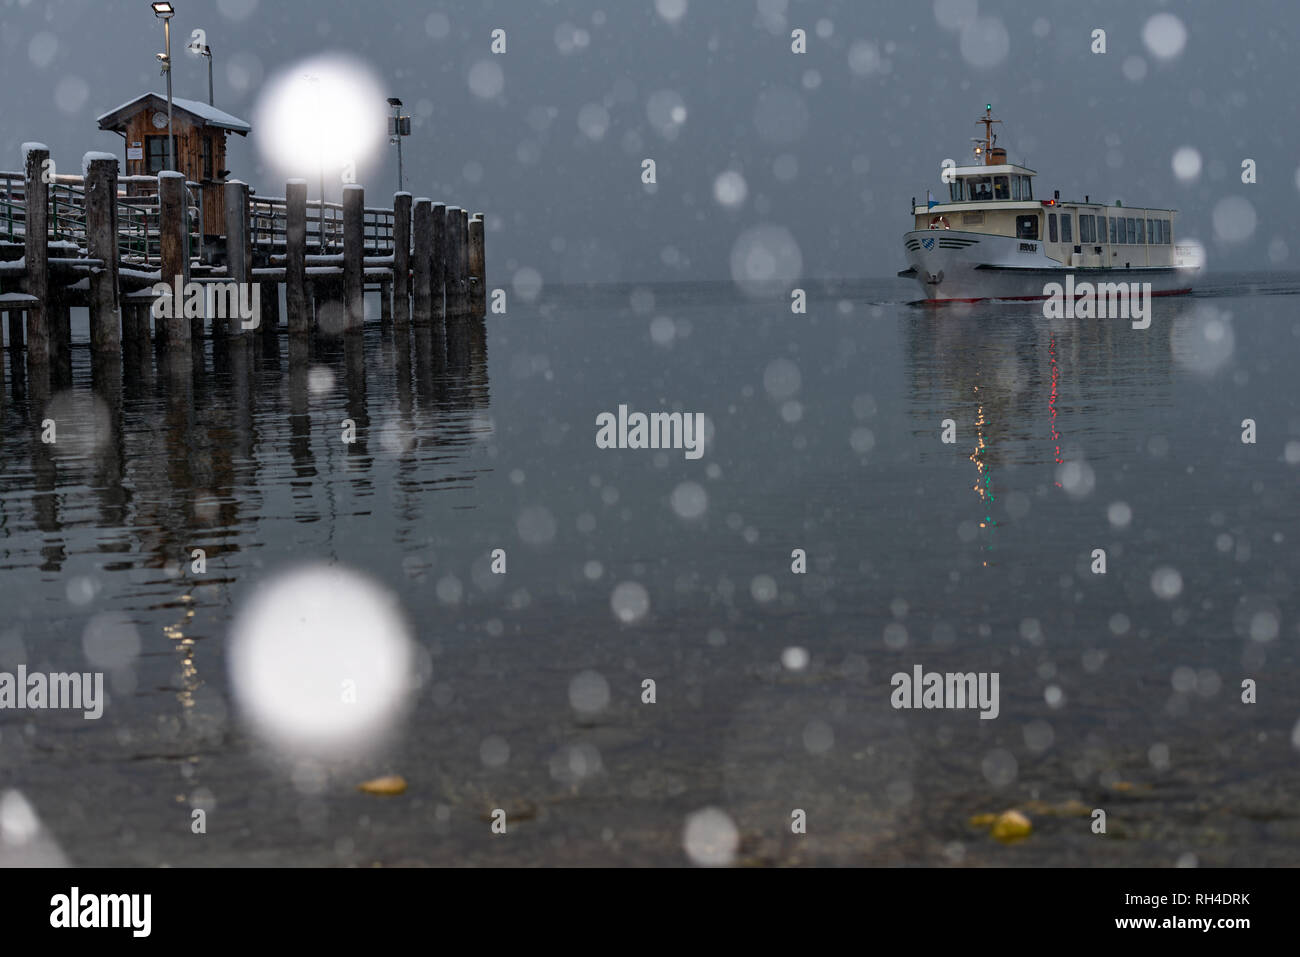 Herrenchiemsee boat in distance with snowflakes in the foreground - Stock Image